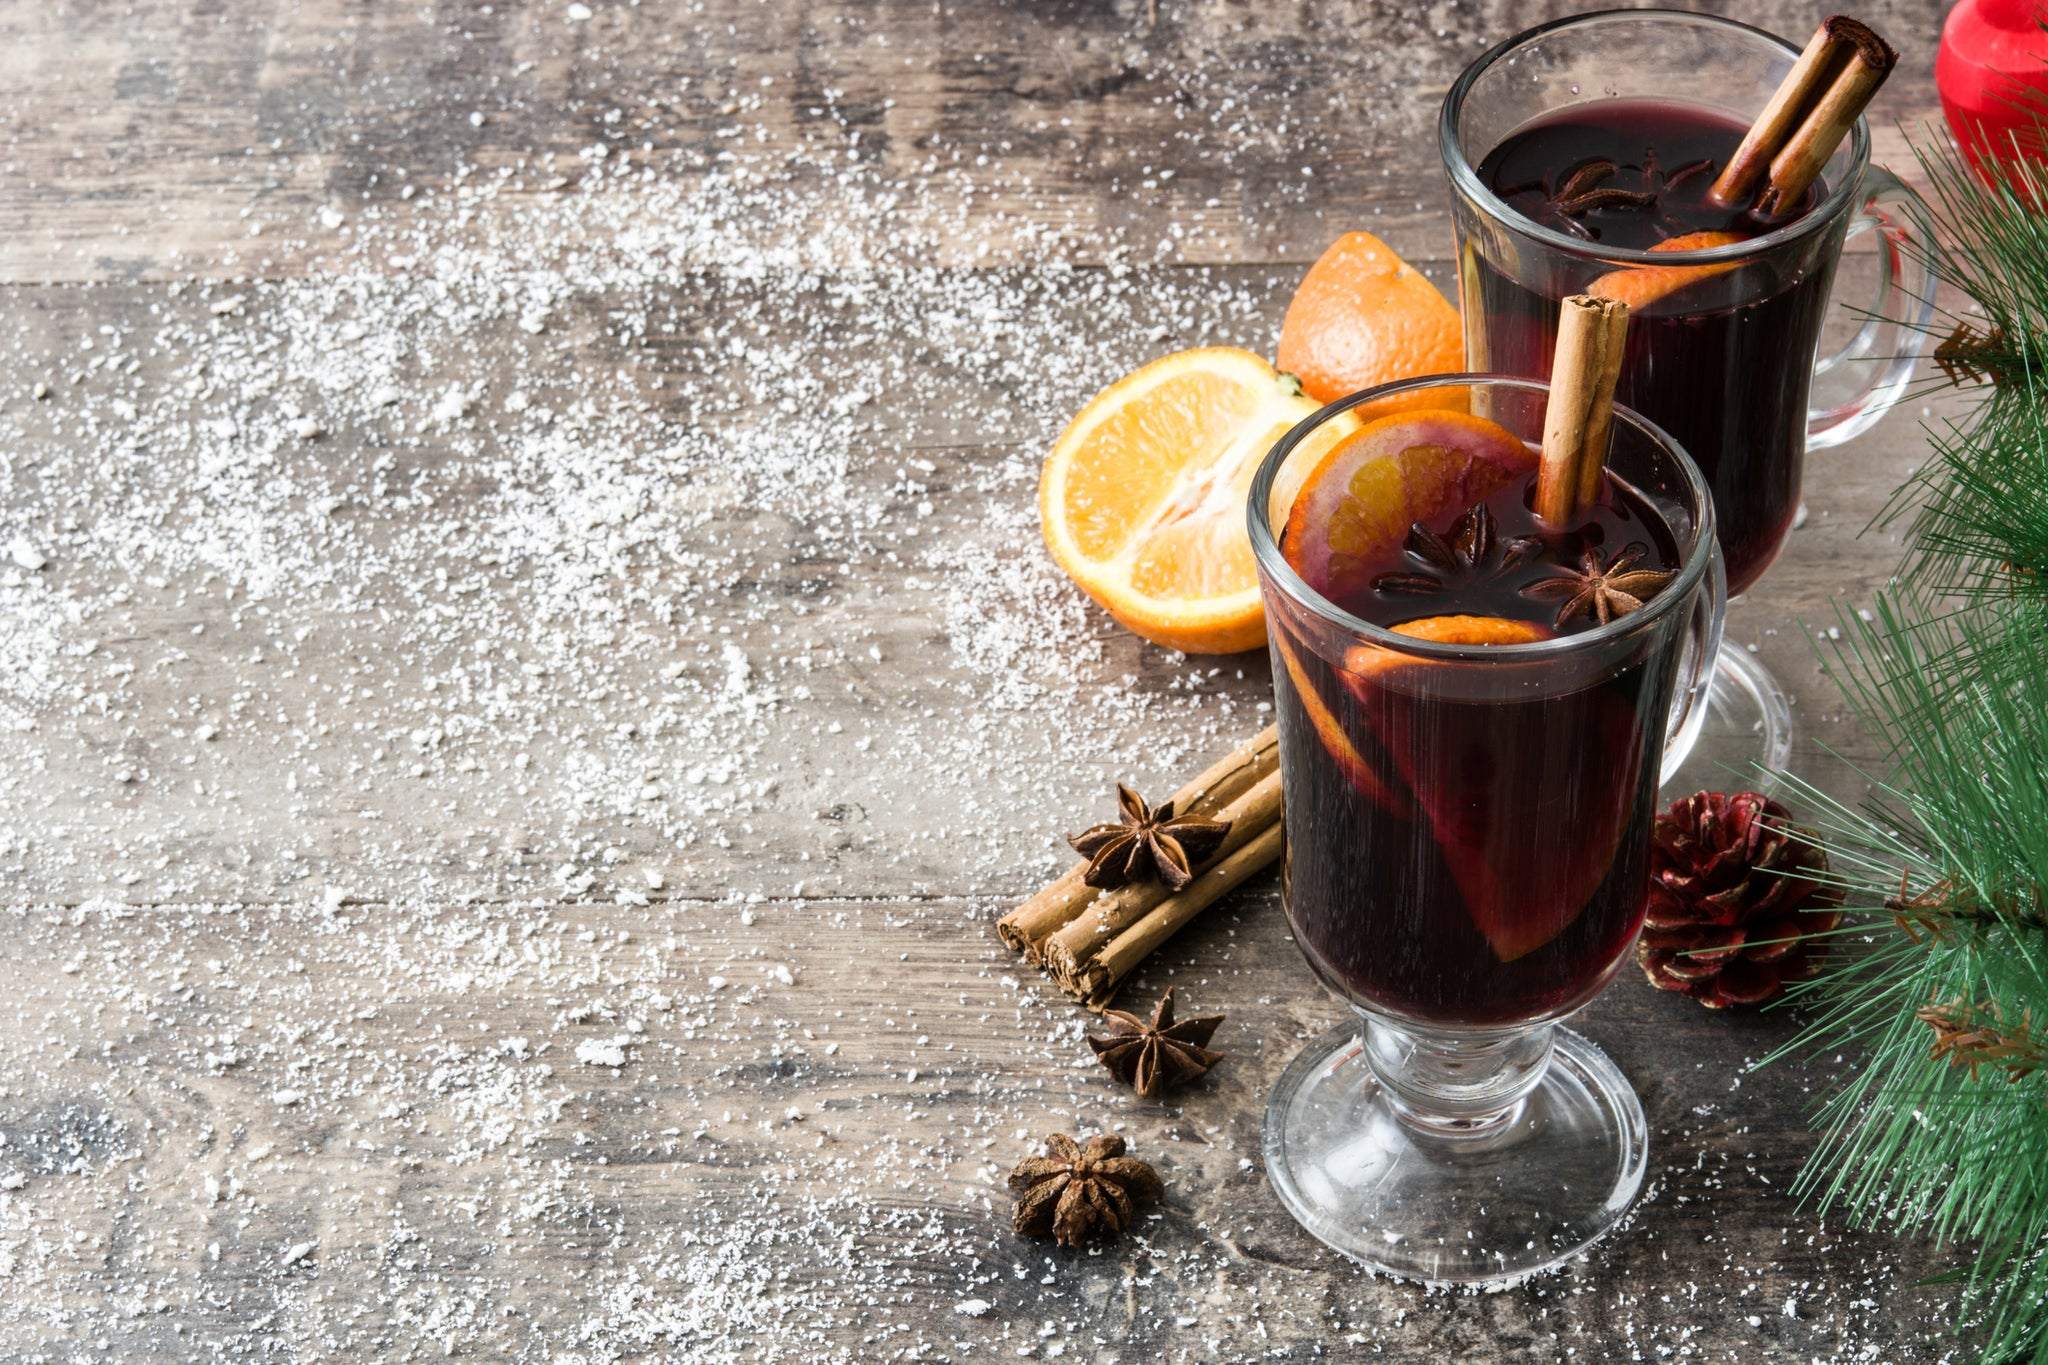 Glühwein or Gluehwein or Mulled Wine - A Hot Spiced Drink for Christmas